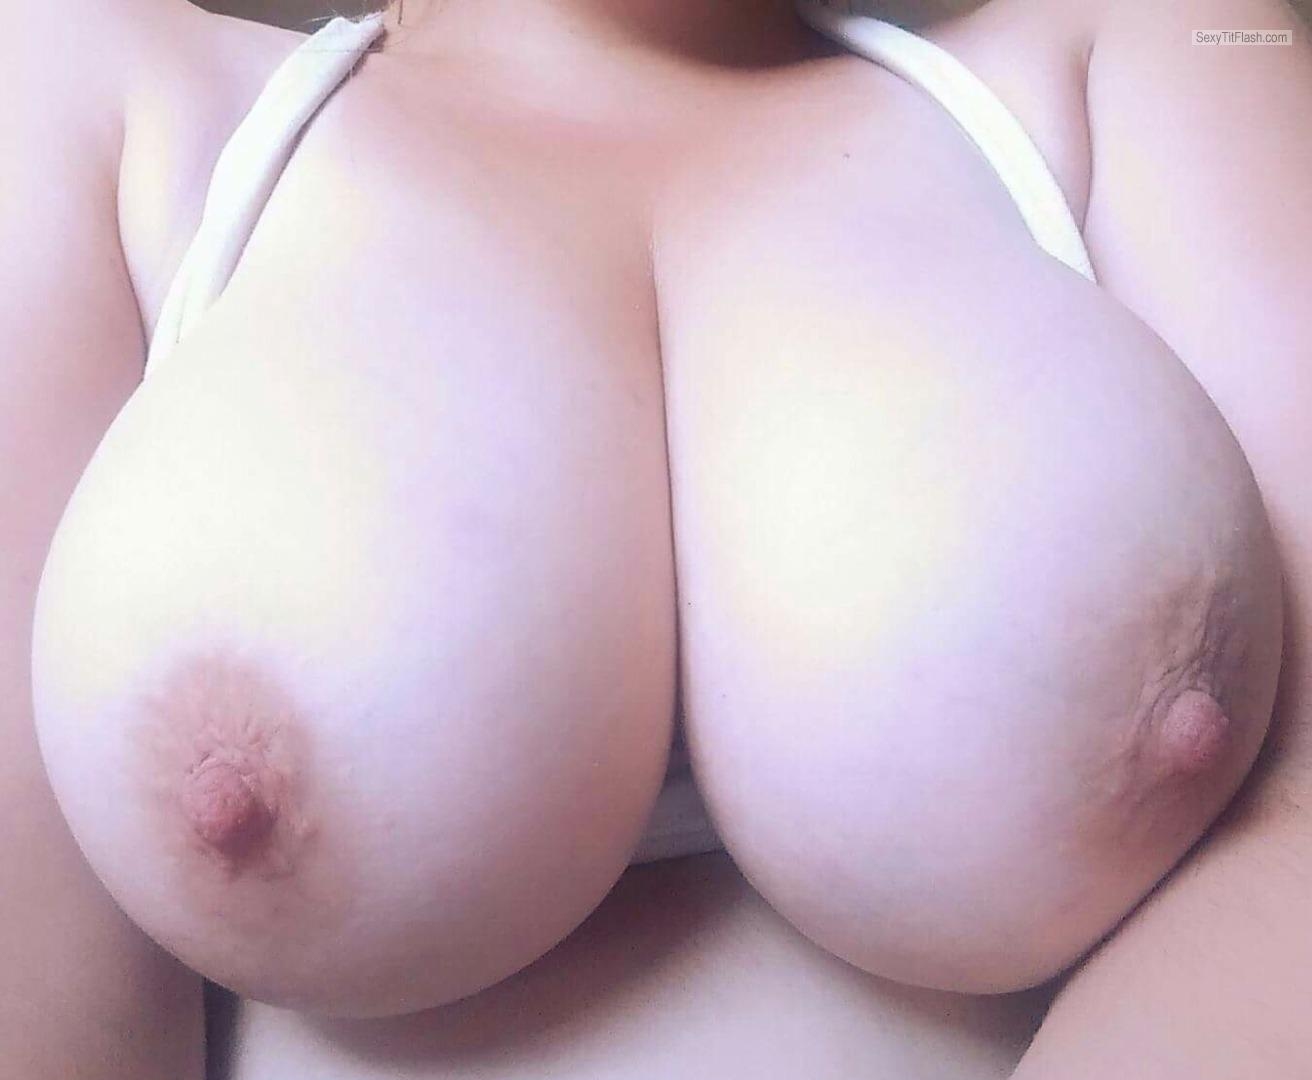 Tit Flash: My Big Tits (Selfie) - Lady D from Canada